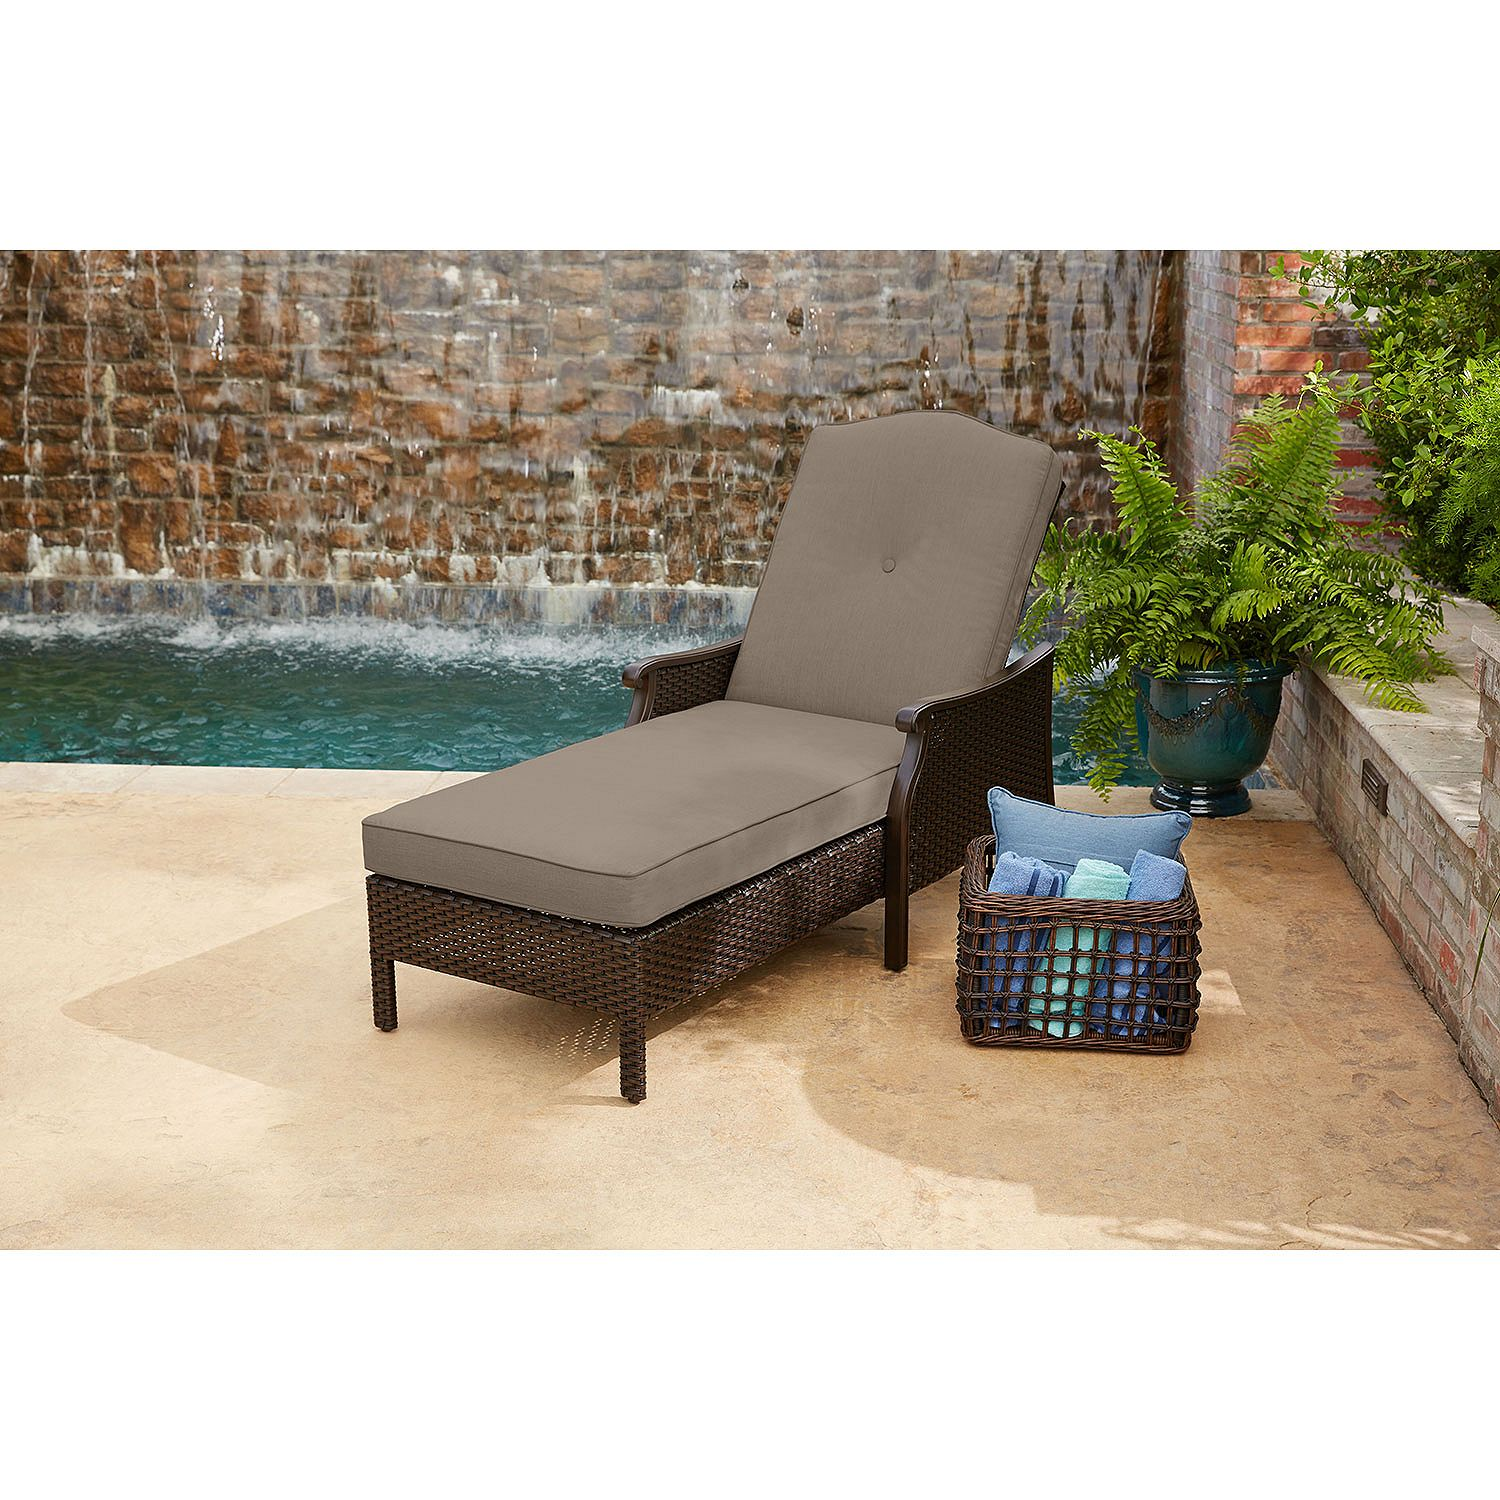 Member 39 s mark agio collection heritage sunbrella for Agio chaise lounge